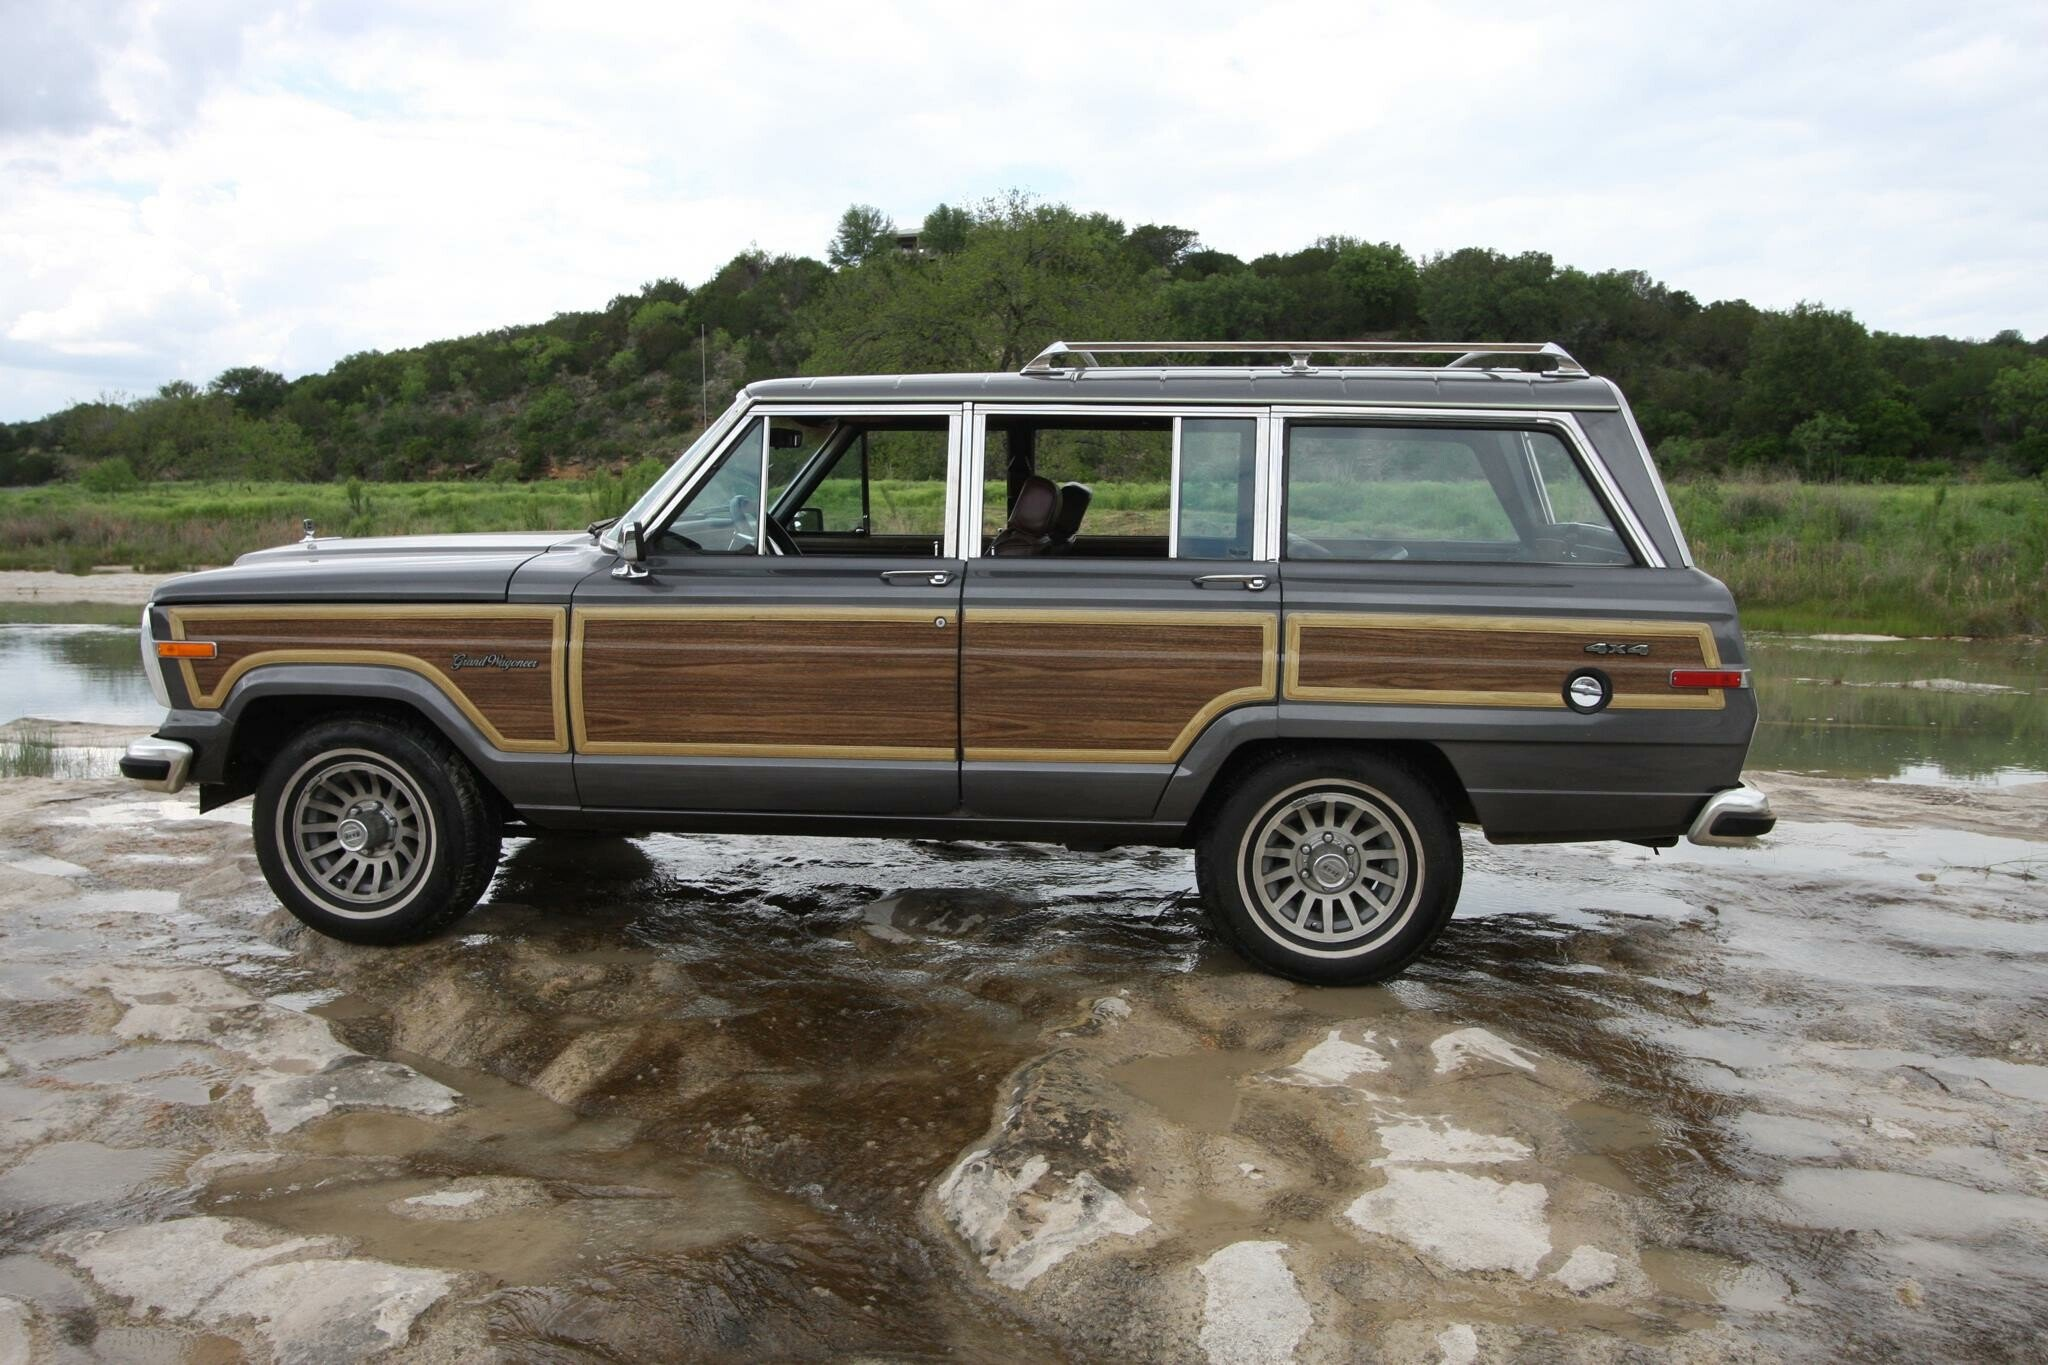 1989 Jeep Grand Wagoneer For Sale Near St Charles Illinois 60175 Classics On Autotrader